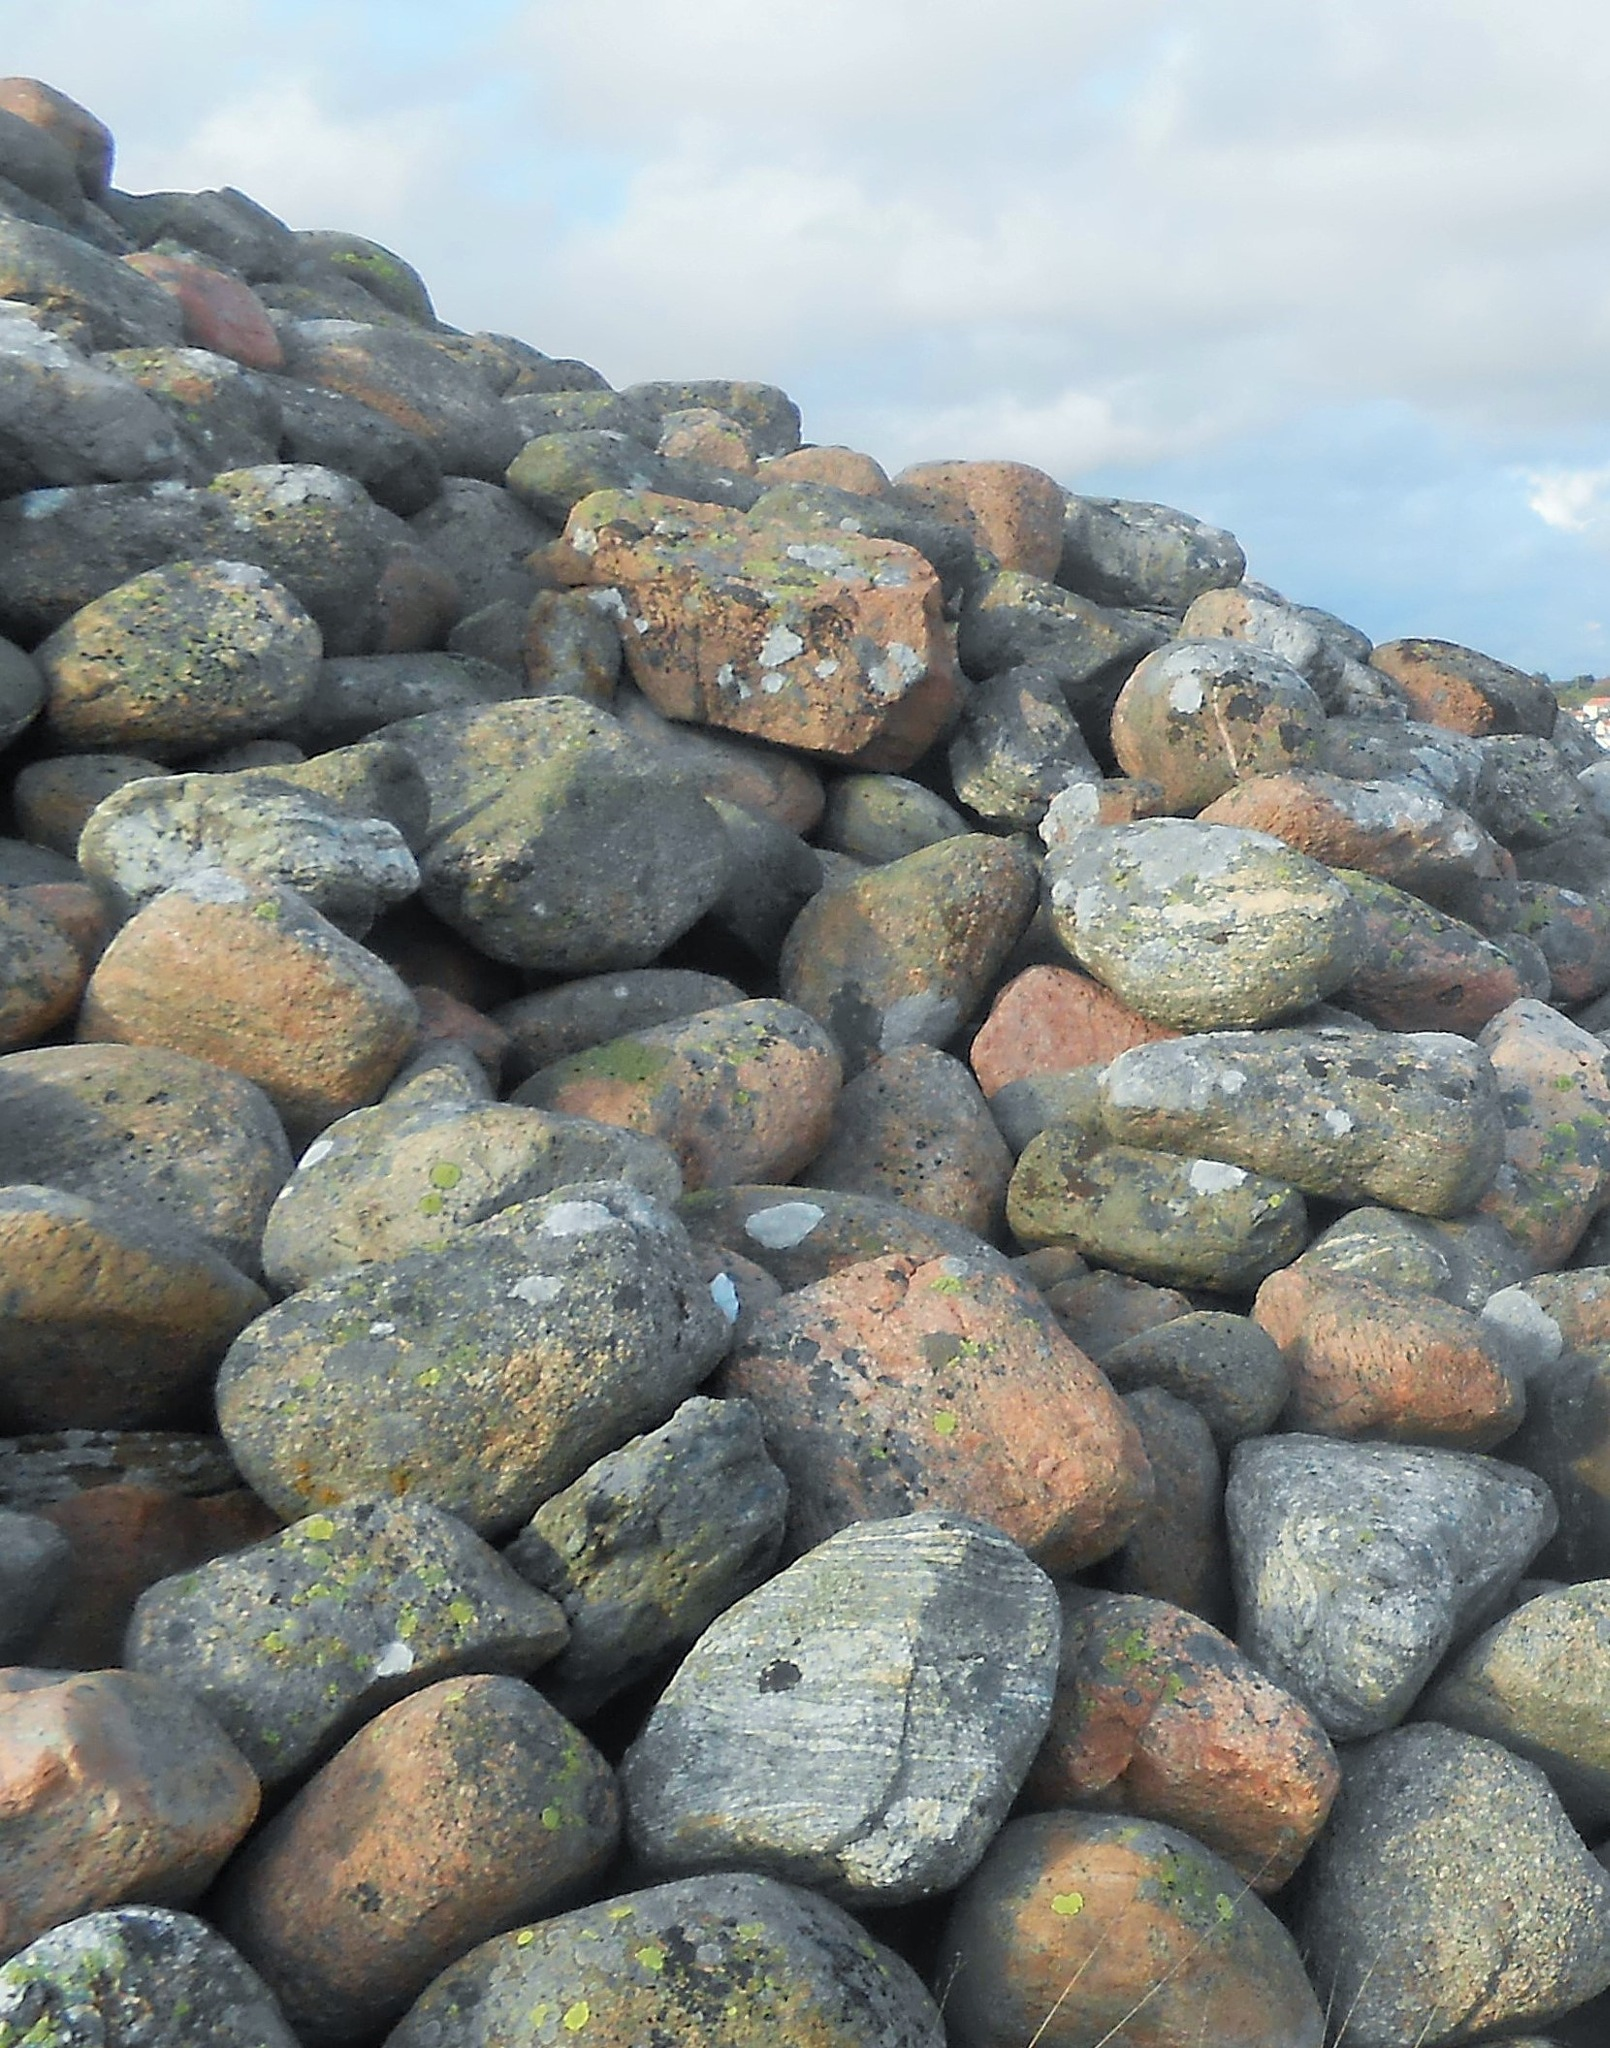 Just stones by Marina Hedberg